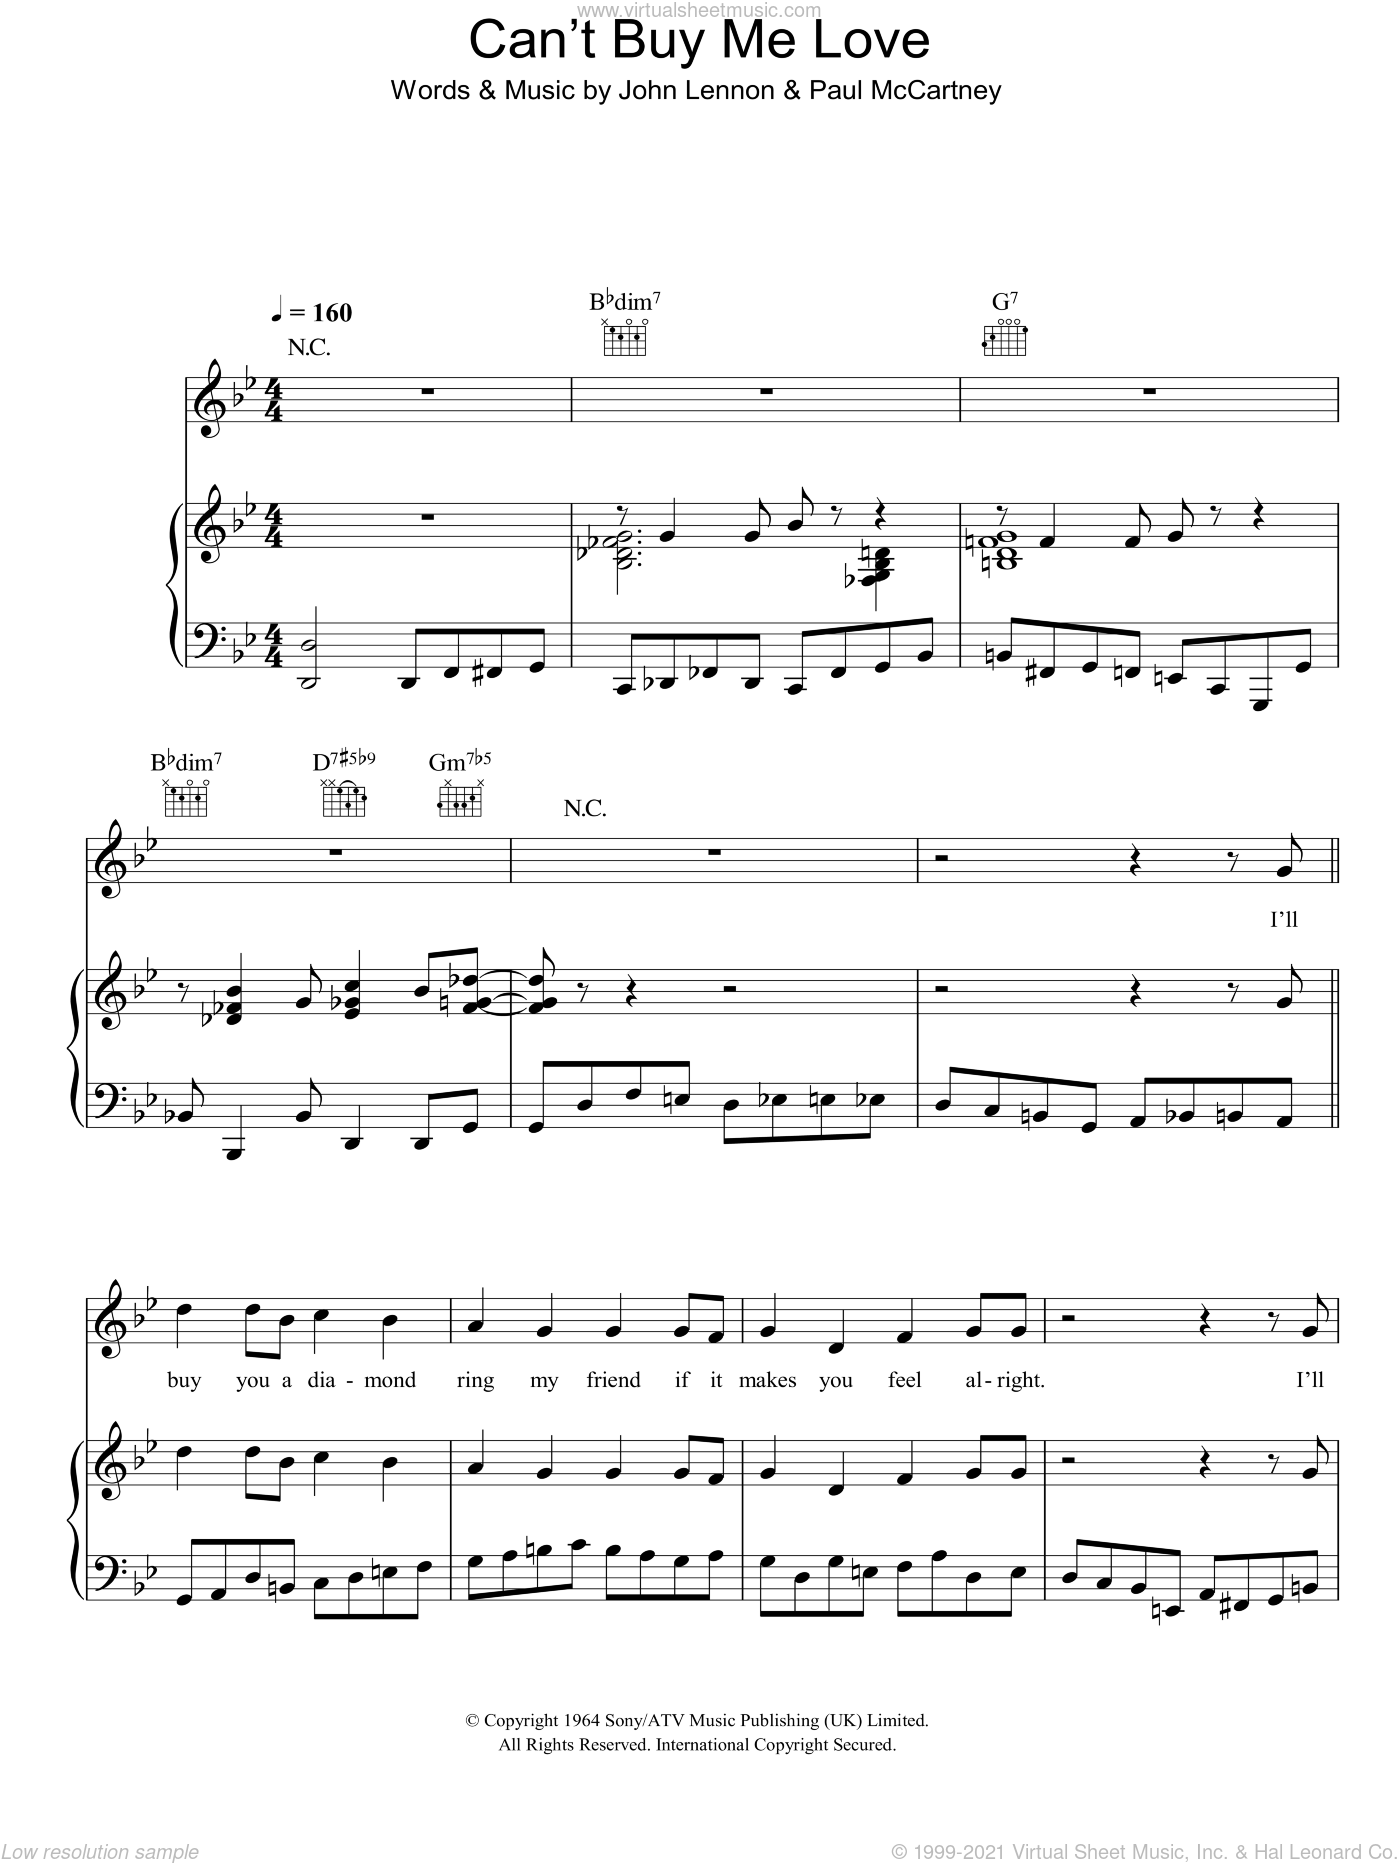 Can't Buy Me Love sheet music for voice, piano or guitar by Michael Buble, John Lennon and Paul McCartney, intermediate skill level